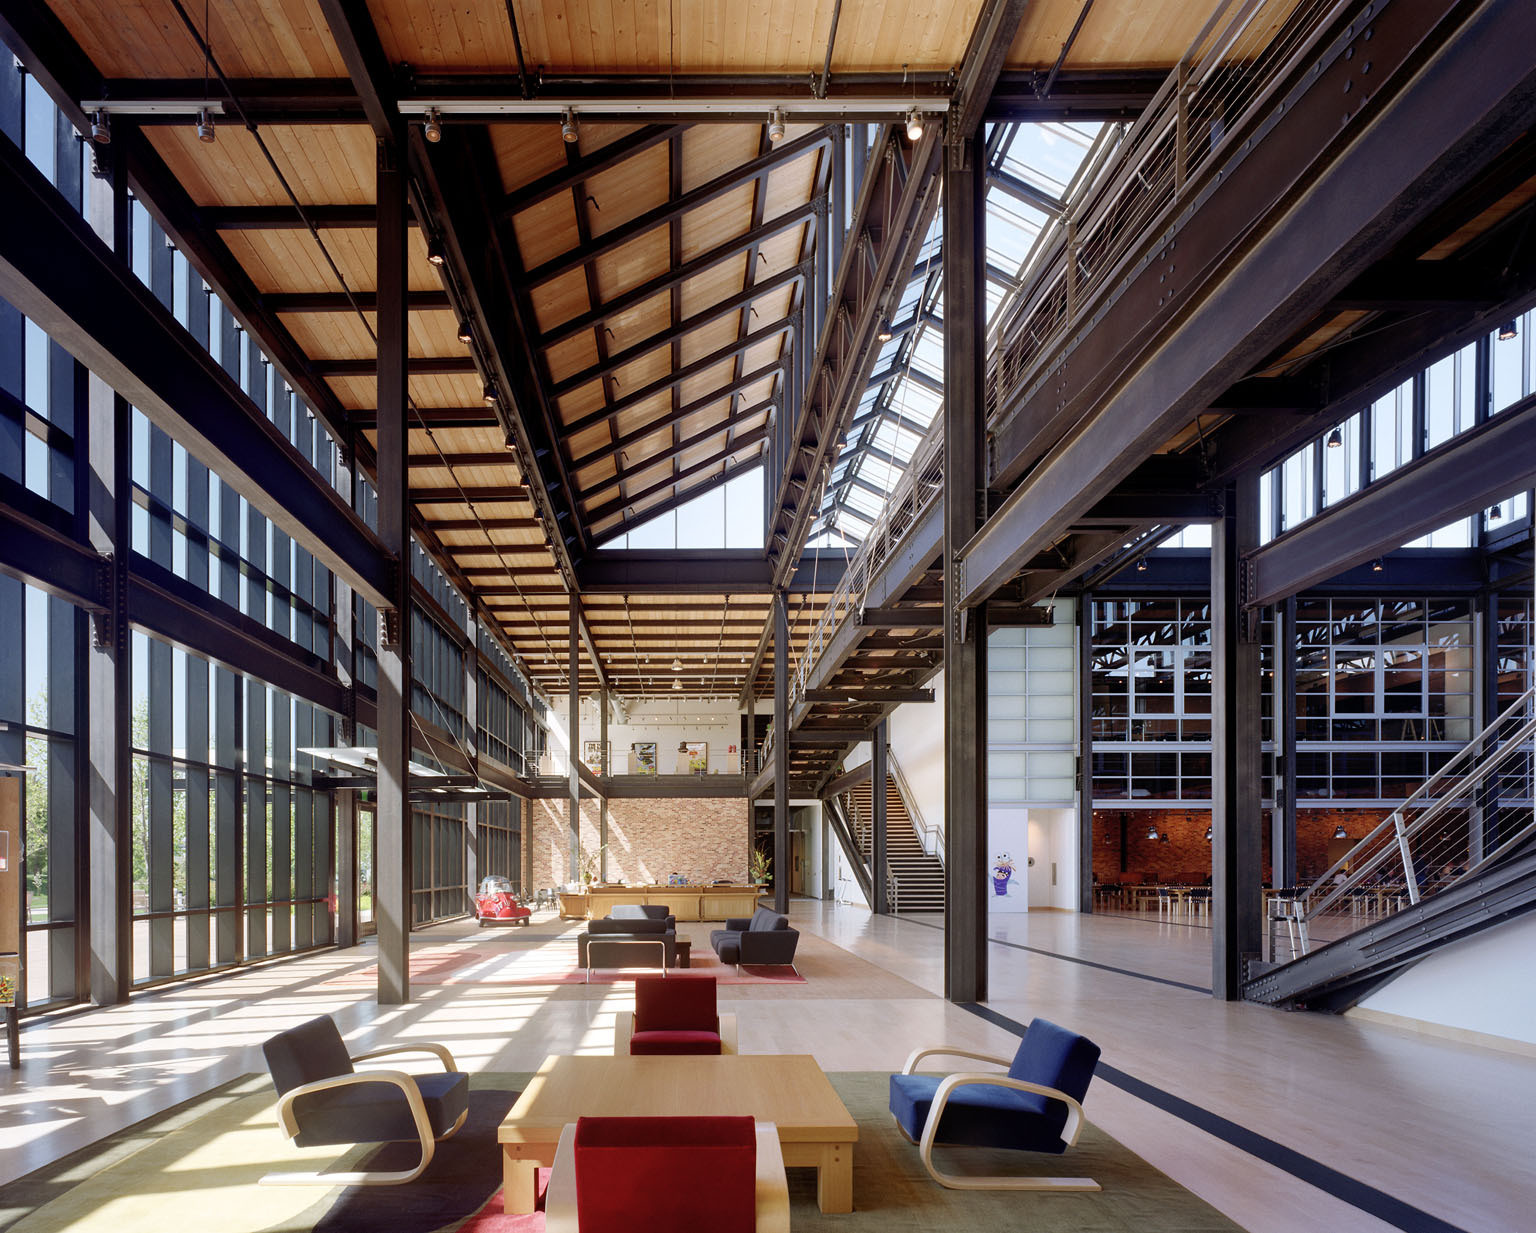 Pixar Headquarters Atrium. Image © Esto/Peter Aaron; Courtesy of Bohlin Cywinski Jackson